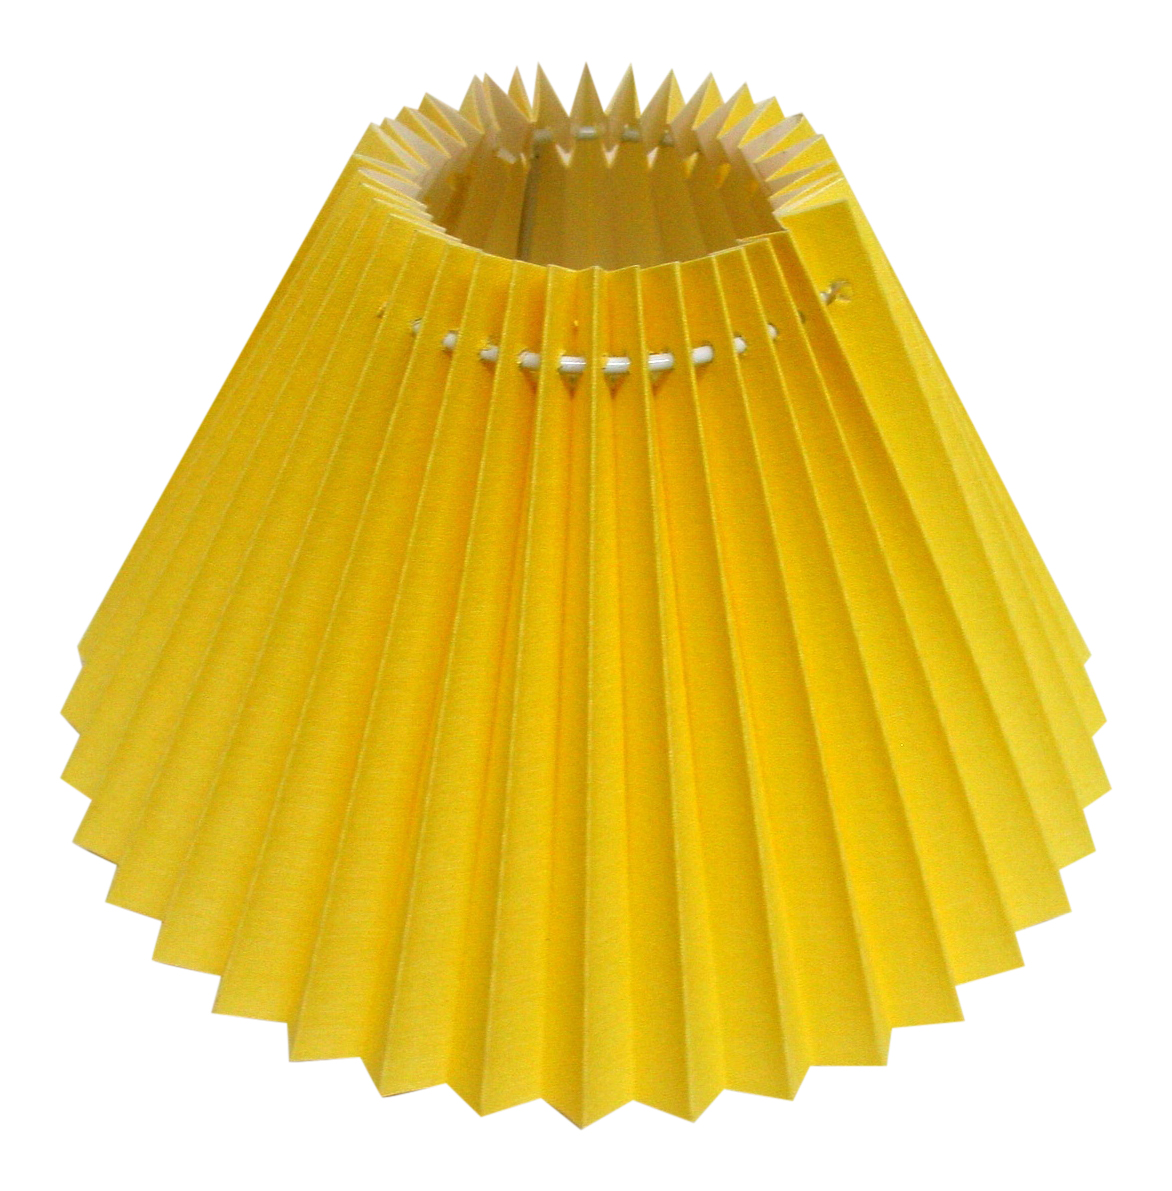 new 10 pleated coolie pendant ceiling table lamp shade ebay. Black Bedroom Furniture Sets. Home Design Ideas